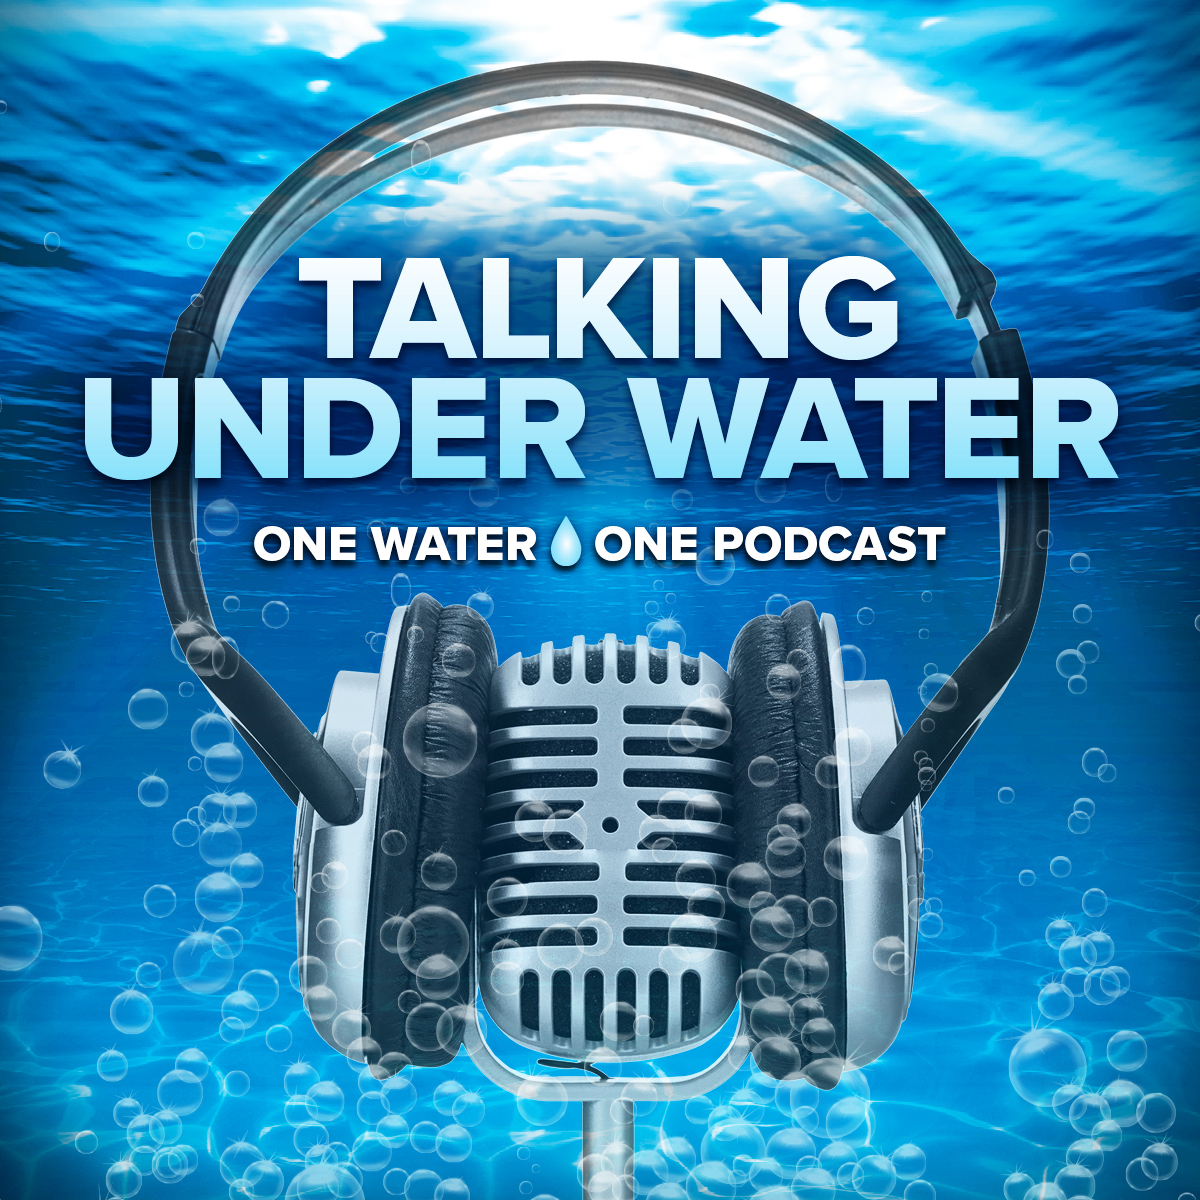 Talking Under Water podcast now available on iTunes and Google Play